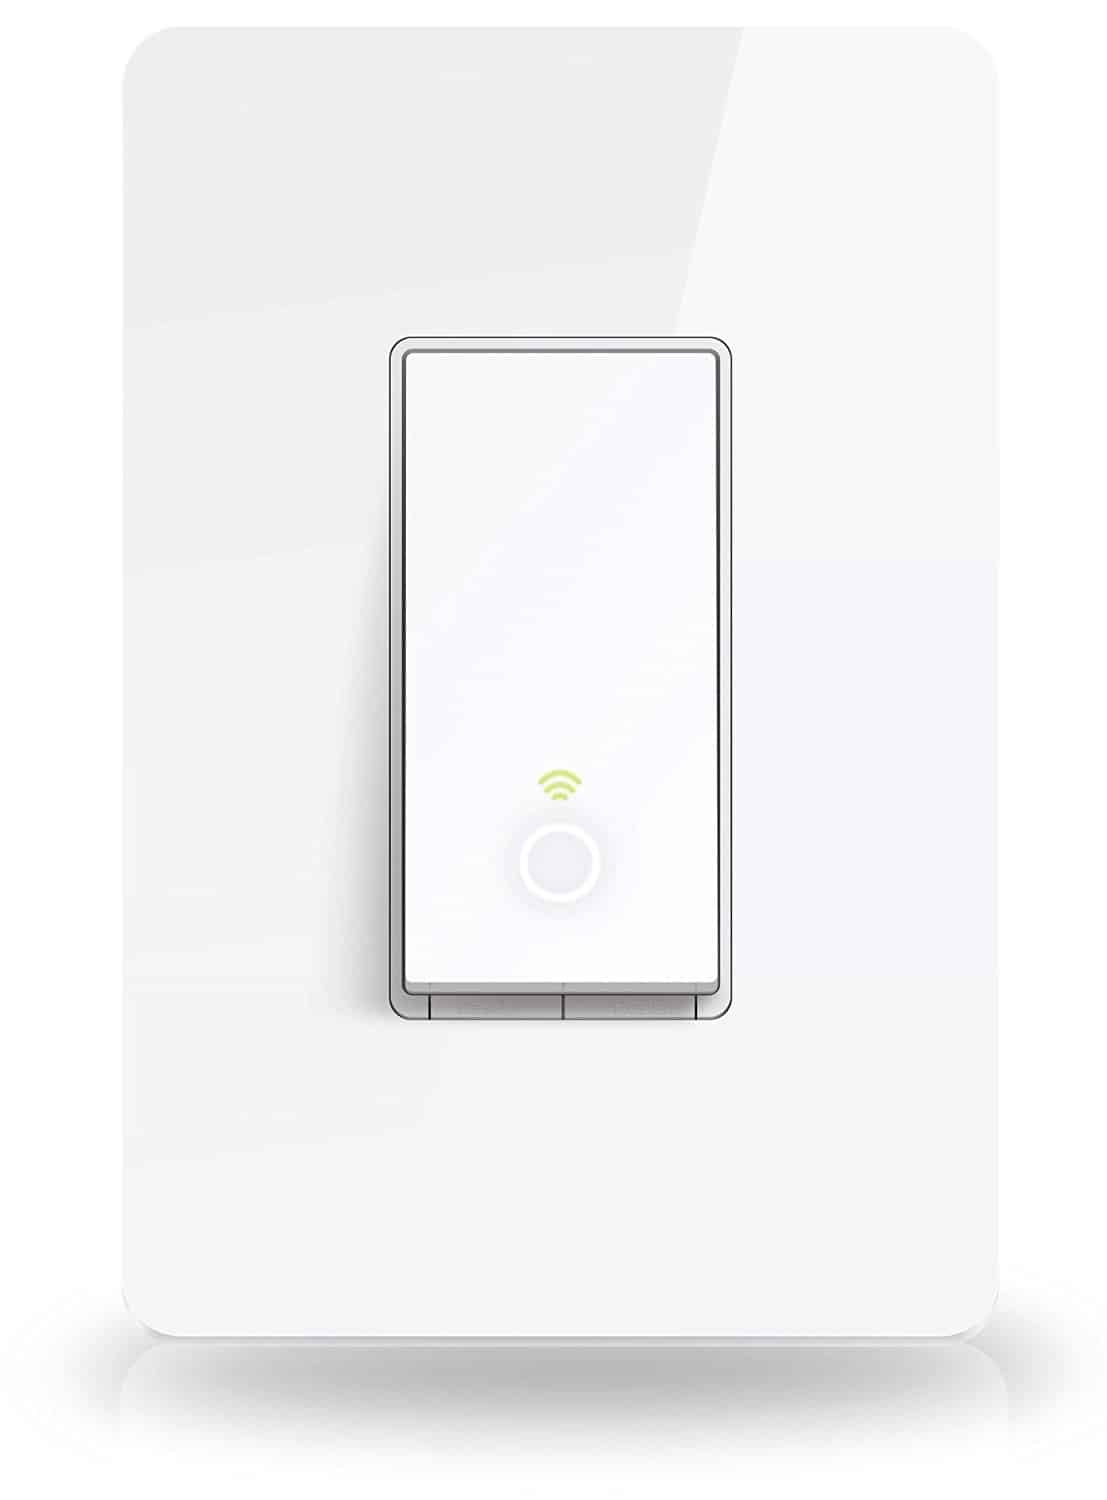 TP-Link Smart Wi-Fi Light Switch Deals, Coupons & Reviews